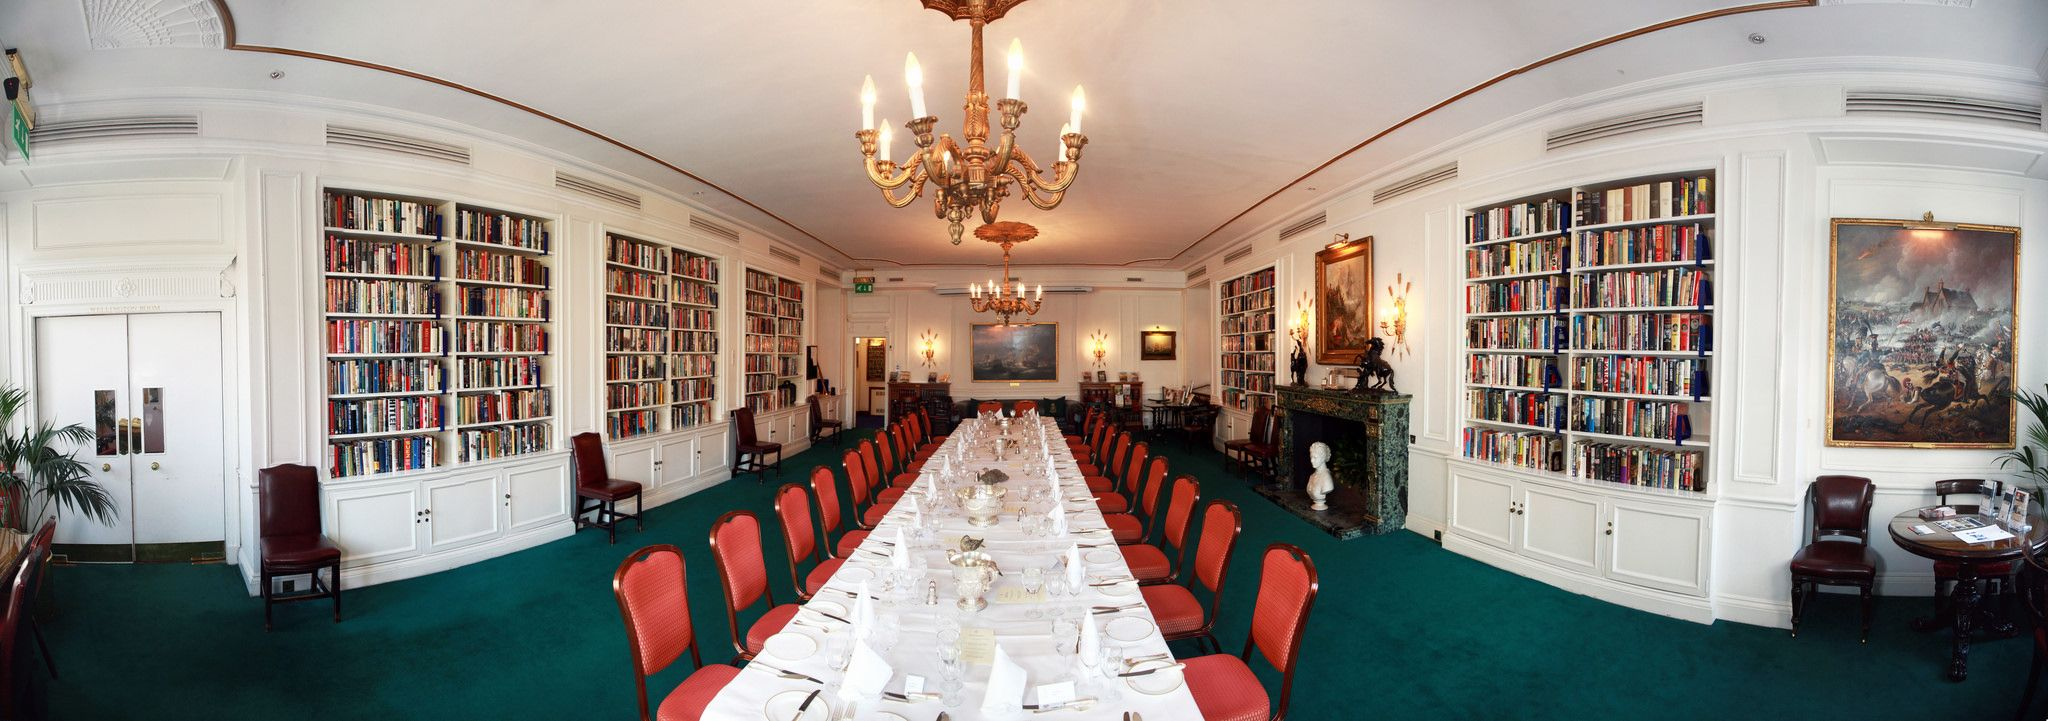 I Covered A Lunch For The Field Sports Club At The Exclusive Rag Club (Army  And Navy) In Pall Mall. This Panoramic Shot Of Their Library Is Made Up Of  8 ...